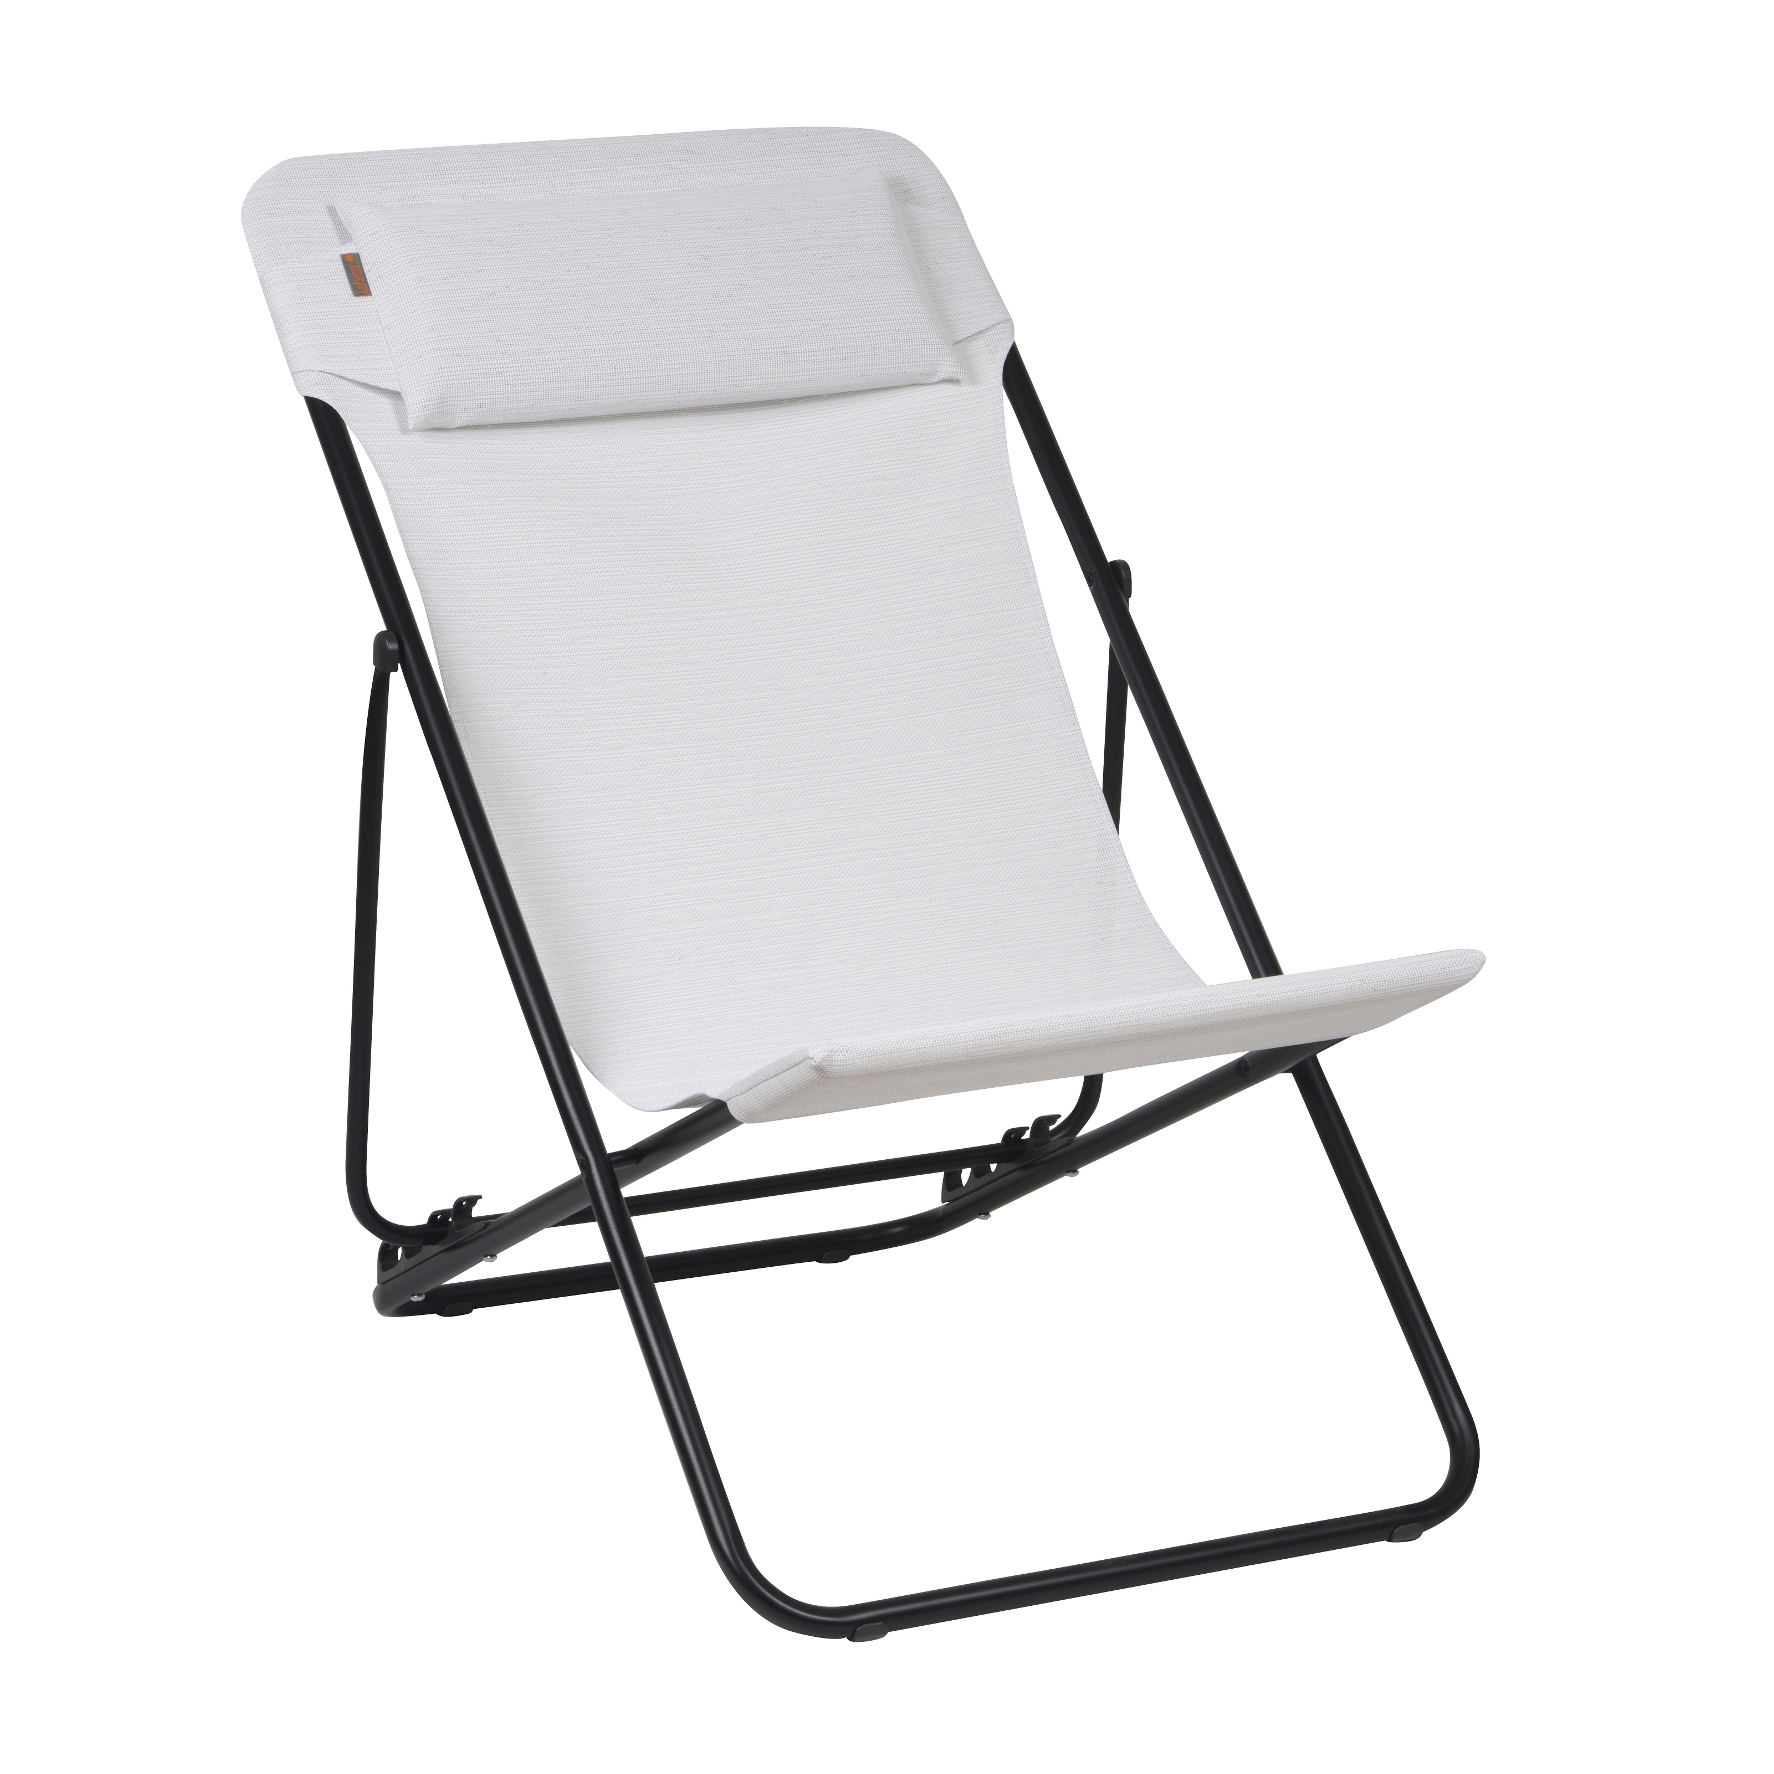 Lafuma c maxi transat plus chaise pliante natural batylin for Chaise de camping lafuma